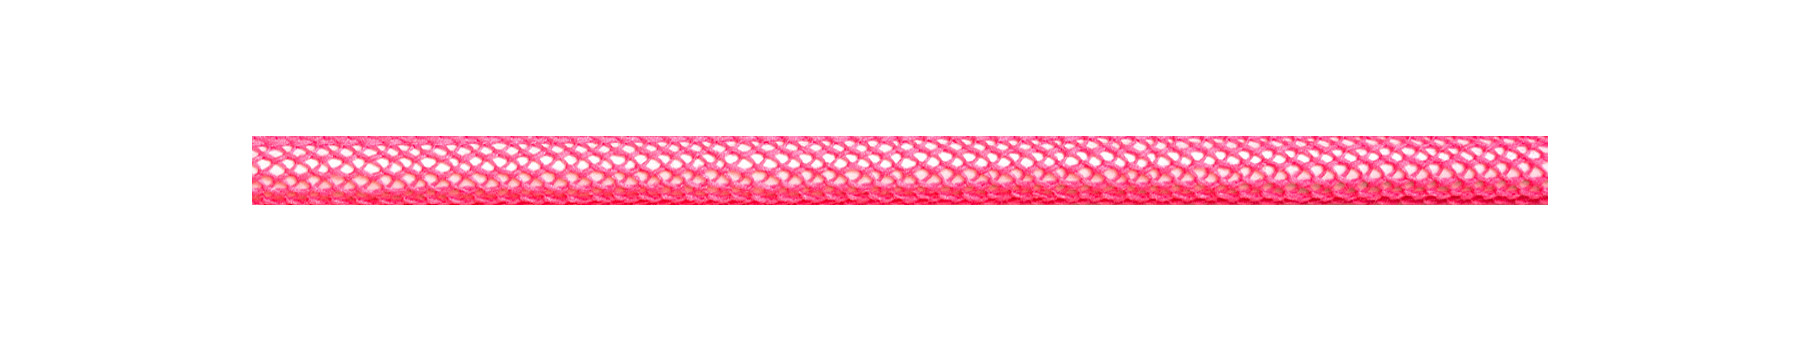 Textile Cable Neon Pink Netlike Covering